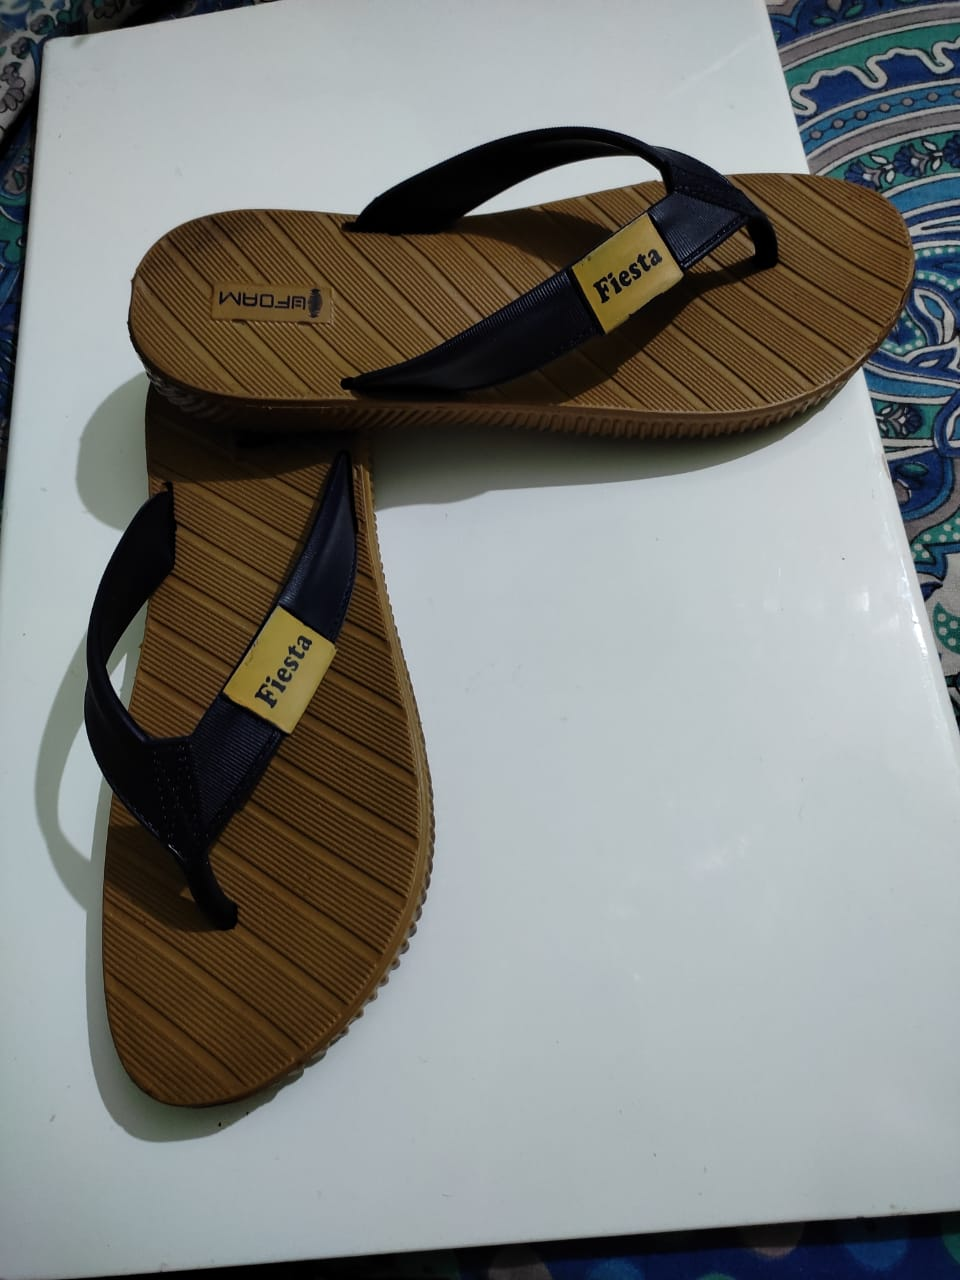 Parmar Trders Stylish Kids's Sandals ,comfortable And Reliable For Articals Pillo-1 Camel (Camel, 4-7, PAIR'S)